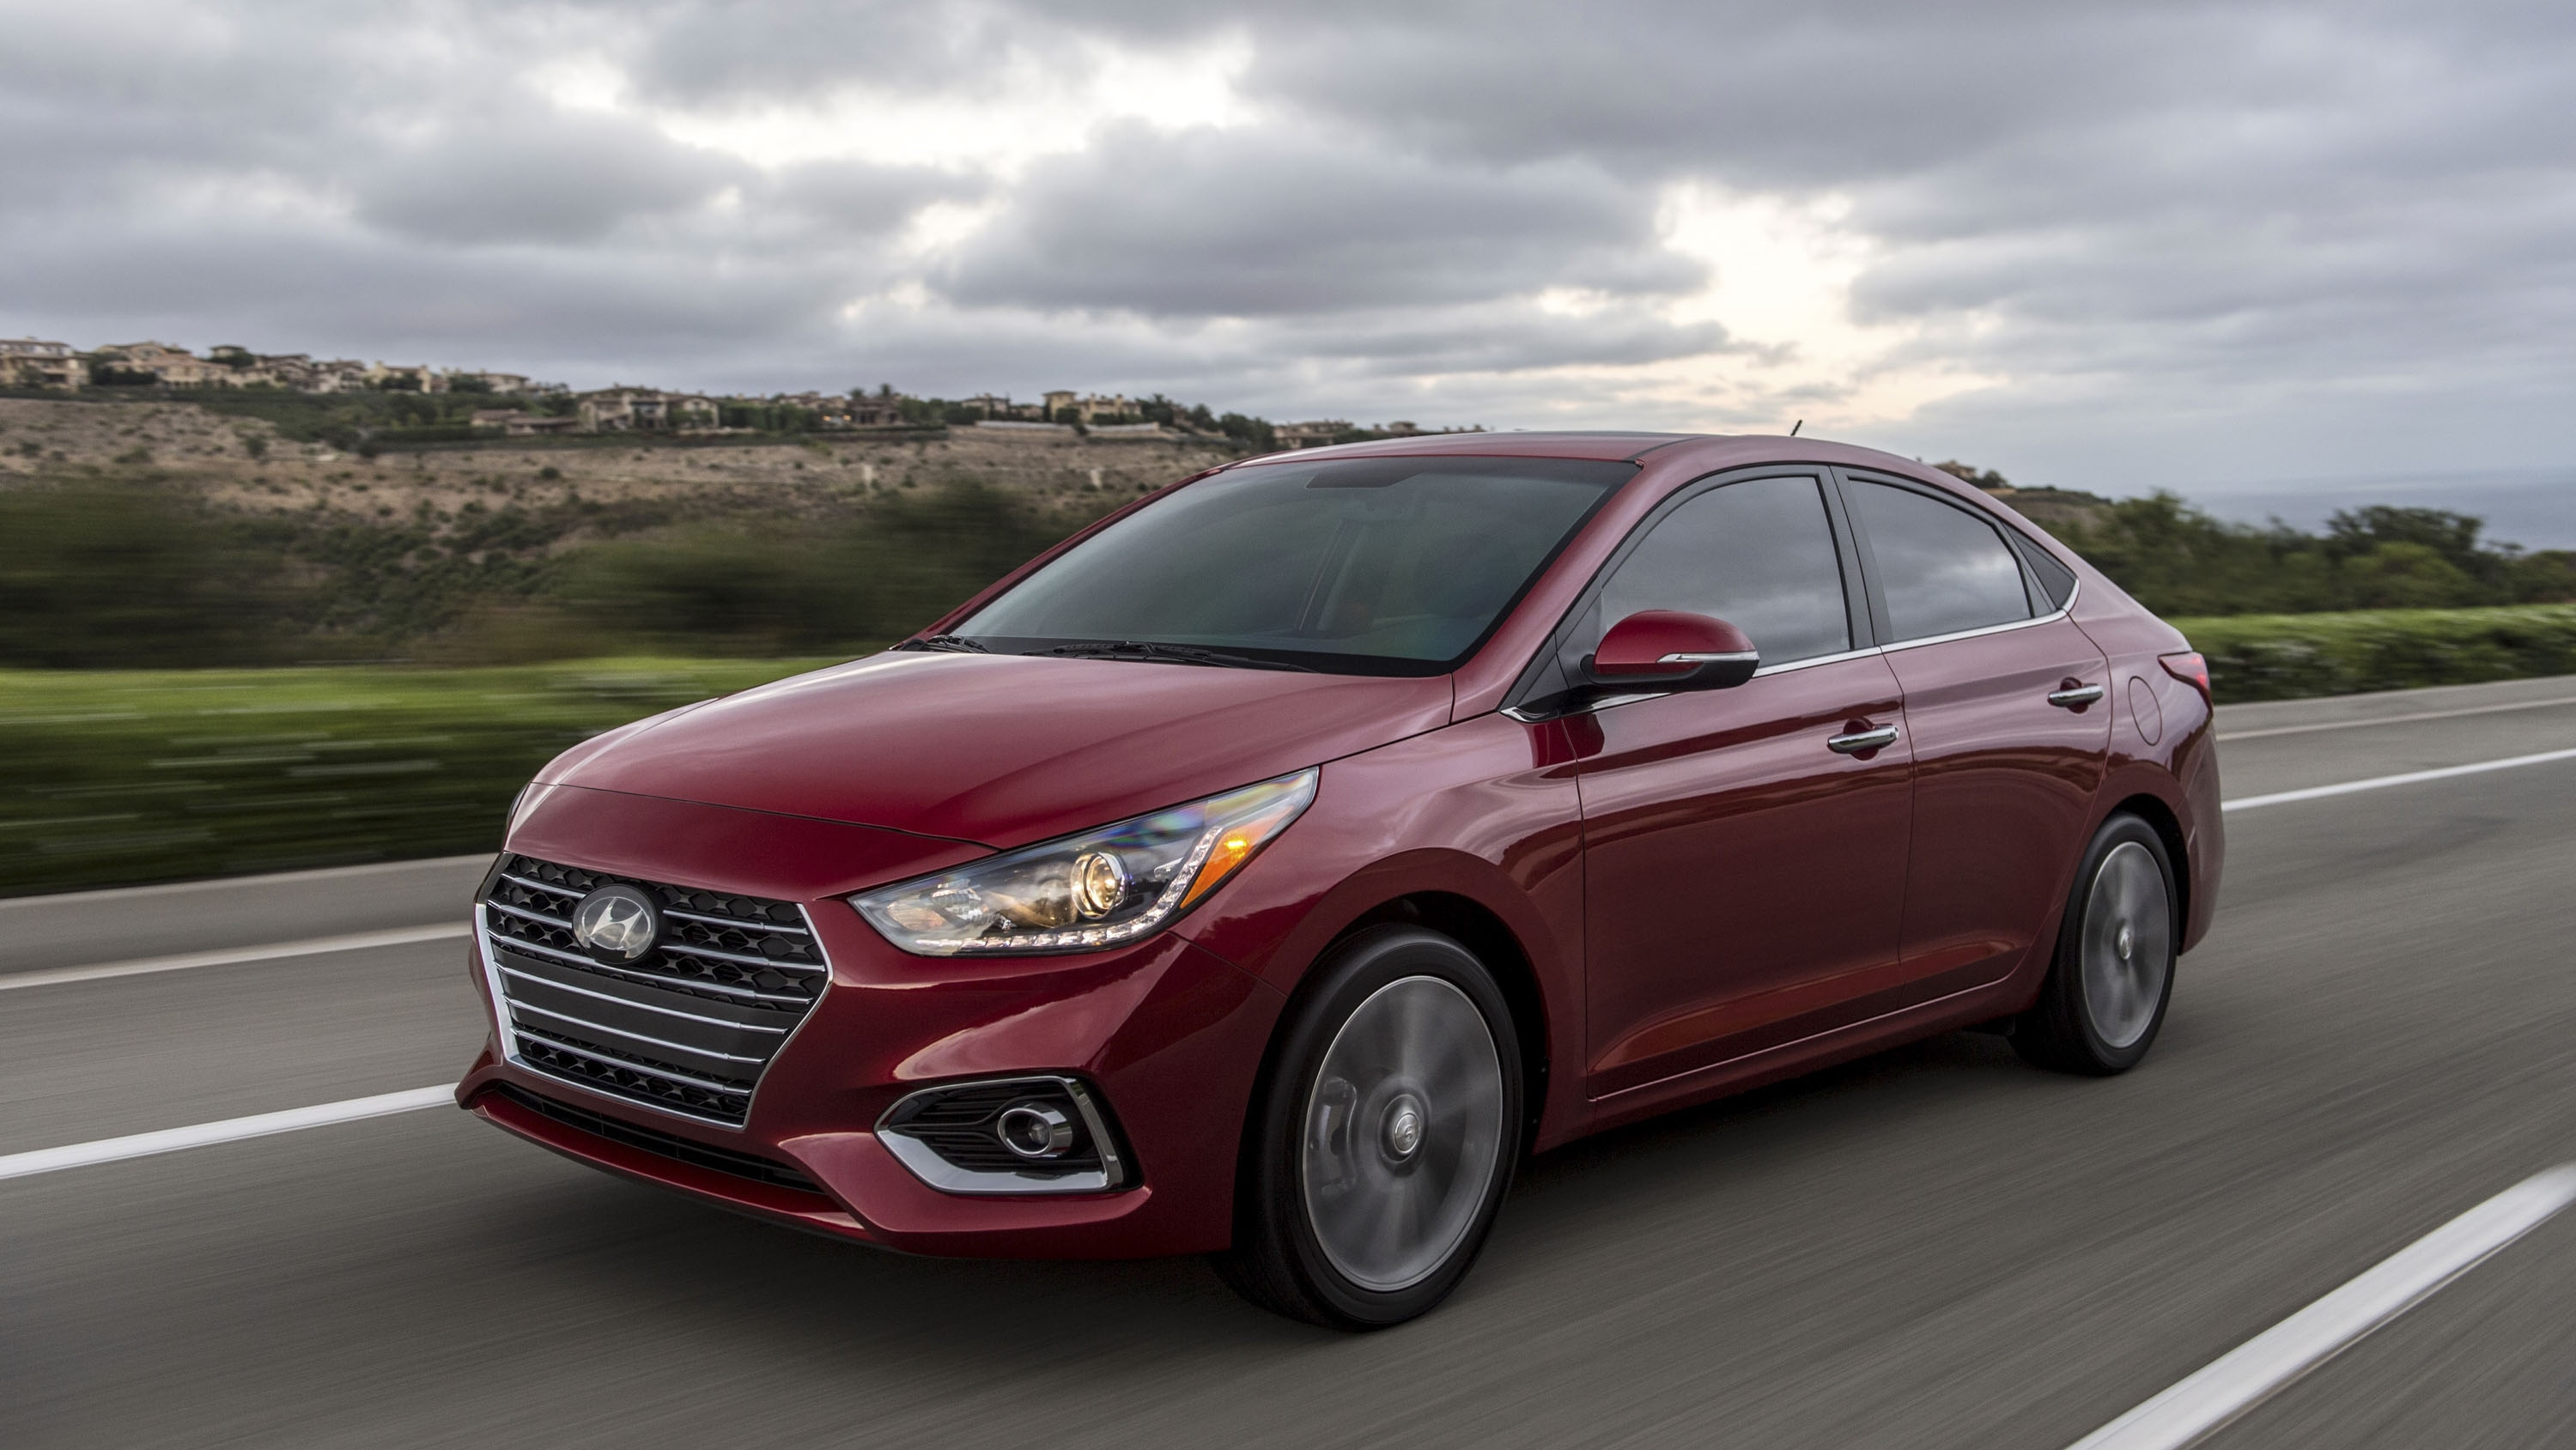 Hyundai Accent Latest News Reviews Specifications Prices